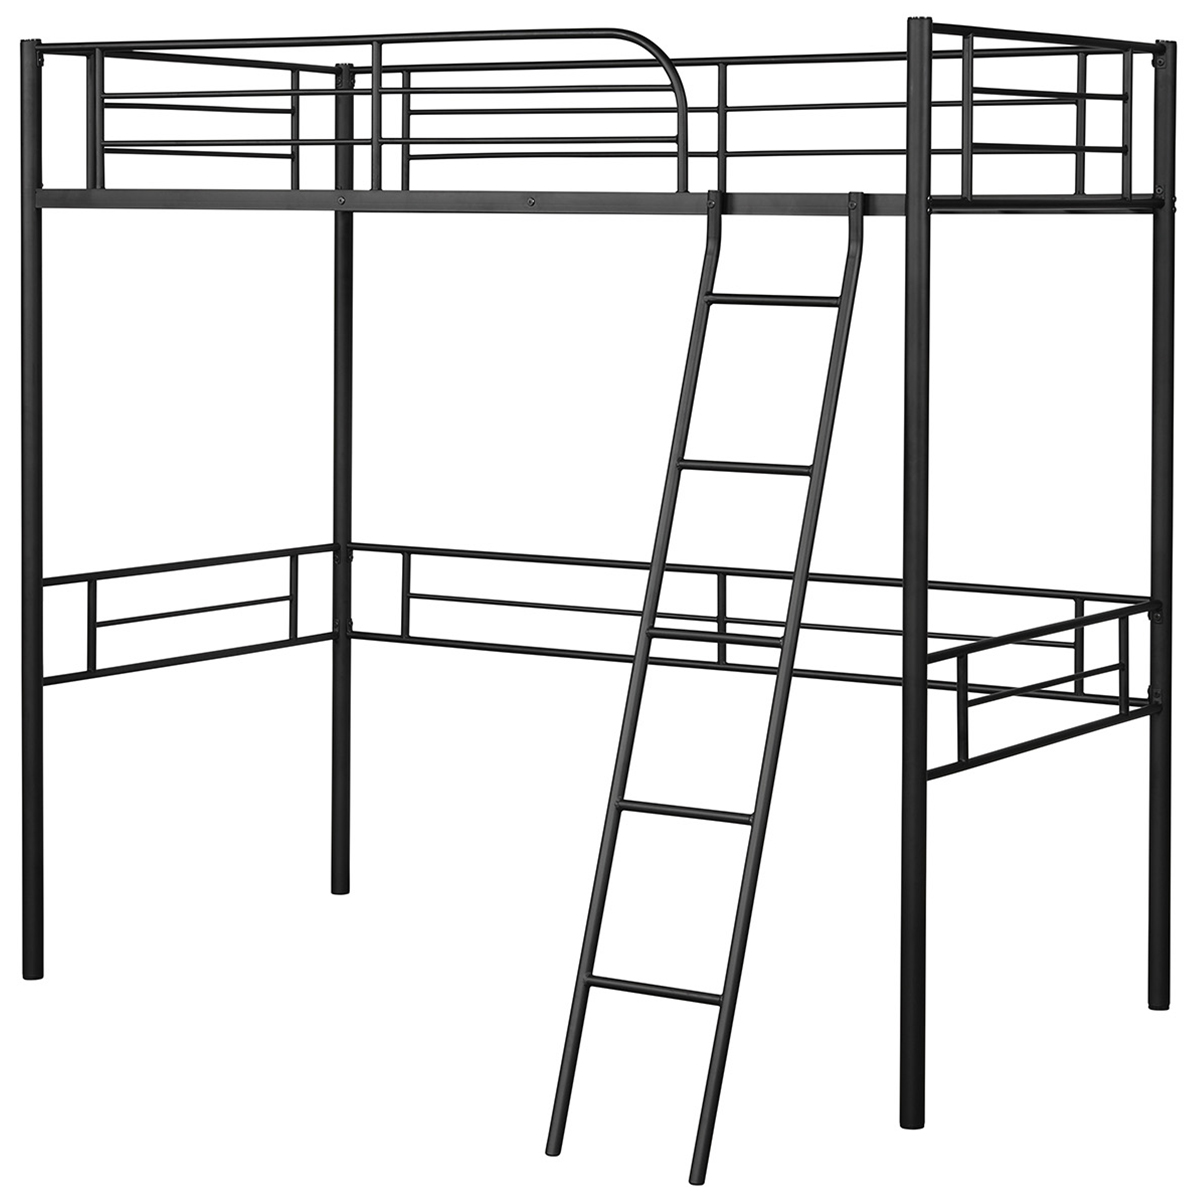 Costway Metal Loft Twin Bed Frame Single Twin Size High Loft Bed W/ Ladder & Guard Rail